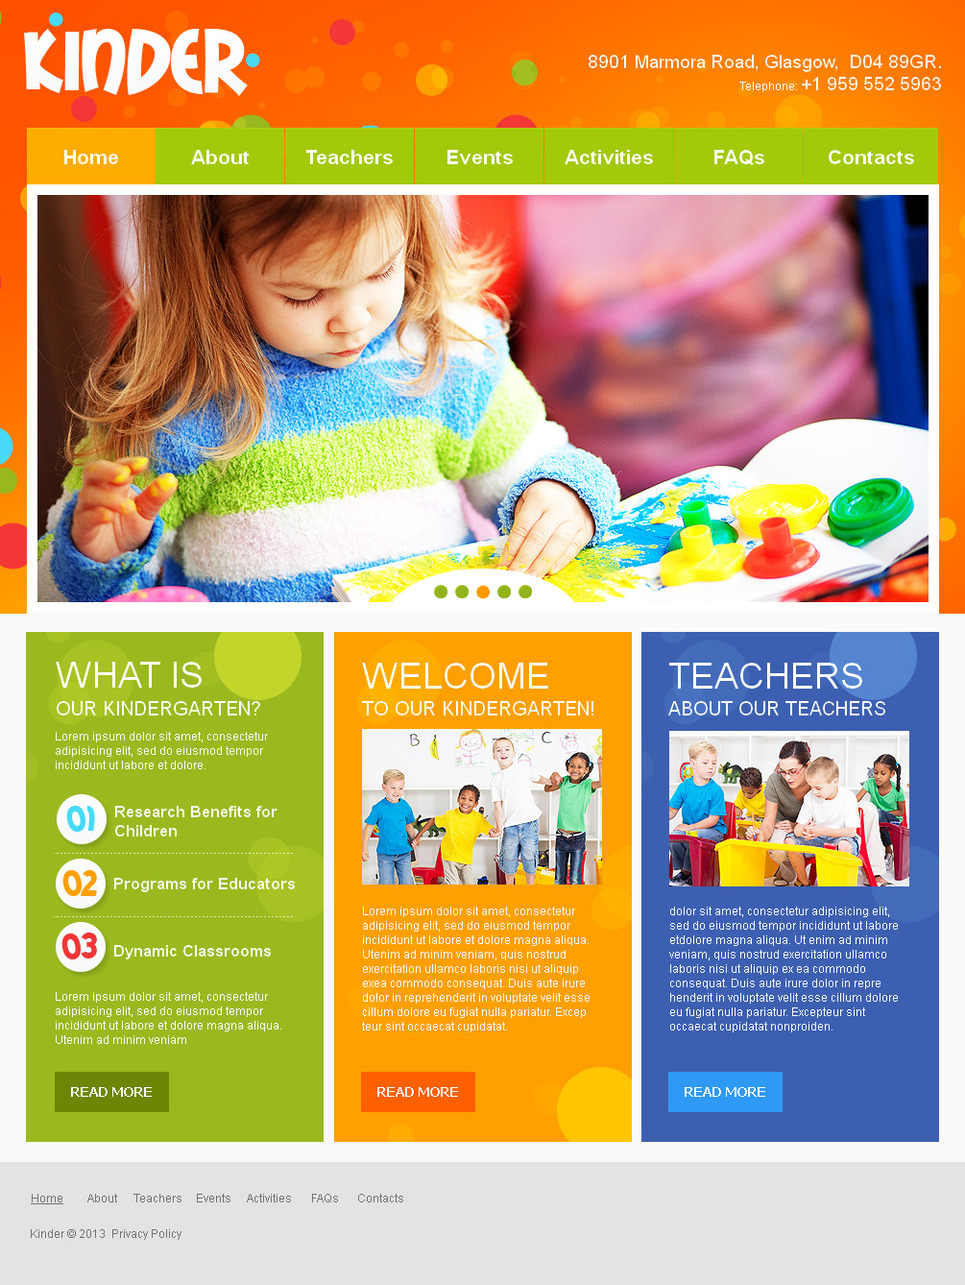 Kids and Children Day Care Website Template with Bright Background - image